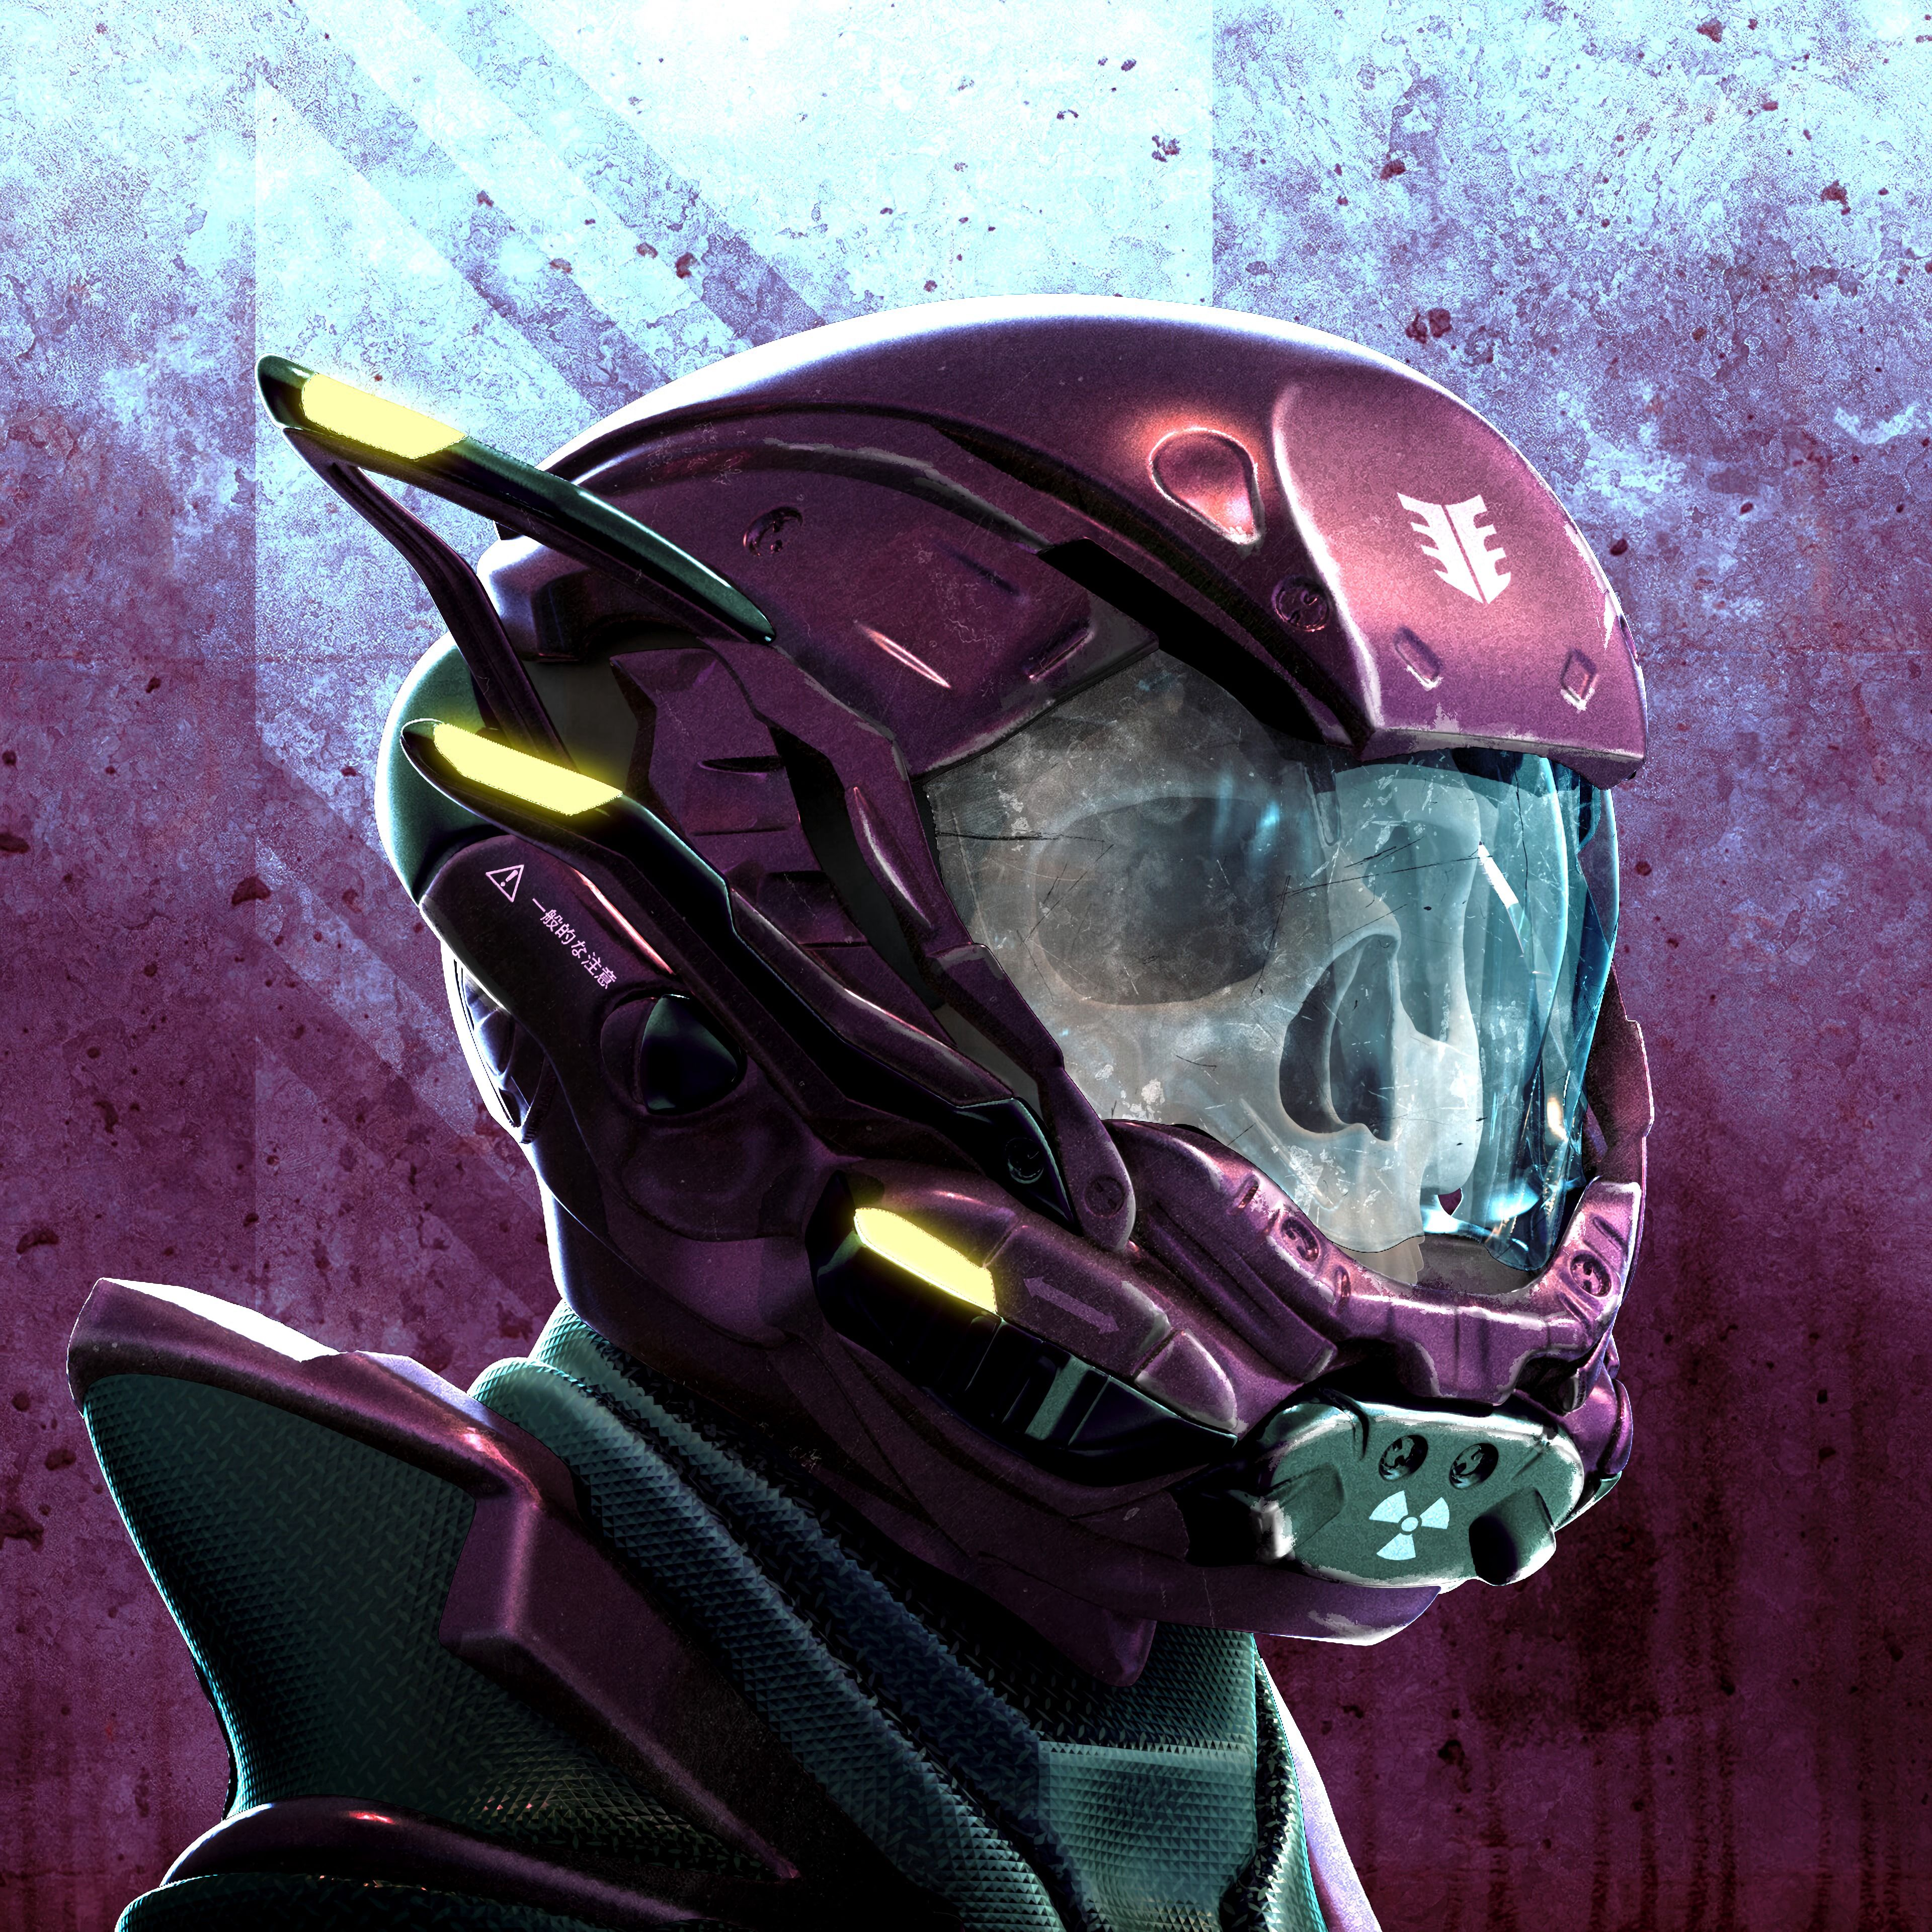 122981 Screensavers and Wallpapers Robot for phone. Download Art, Helmet, Robot, Skull pictures for free